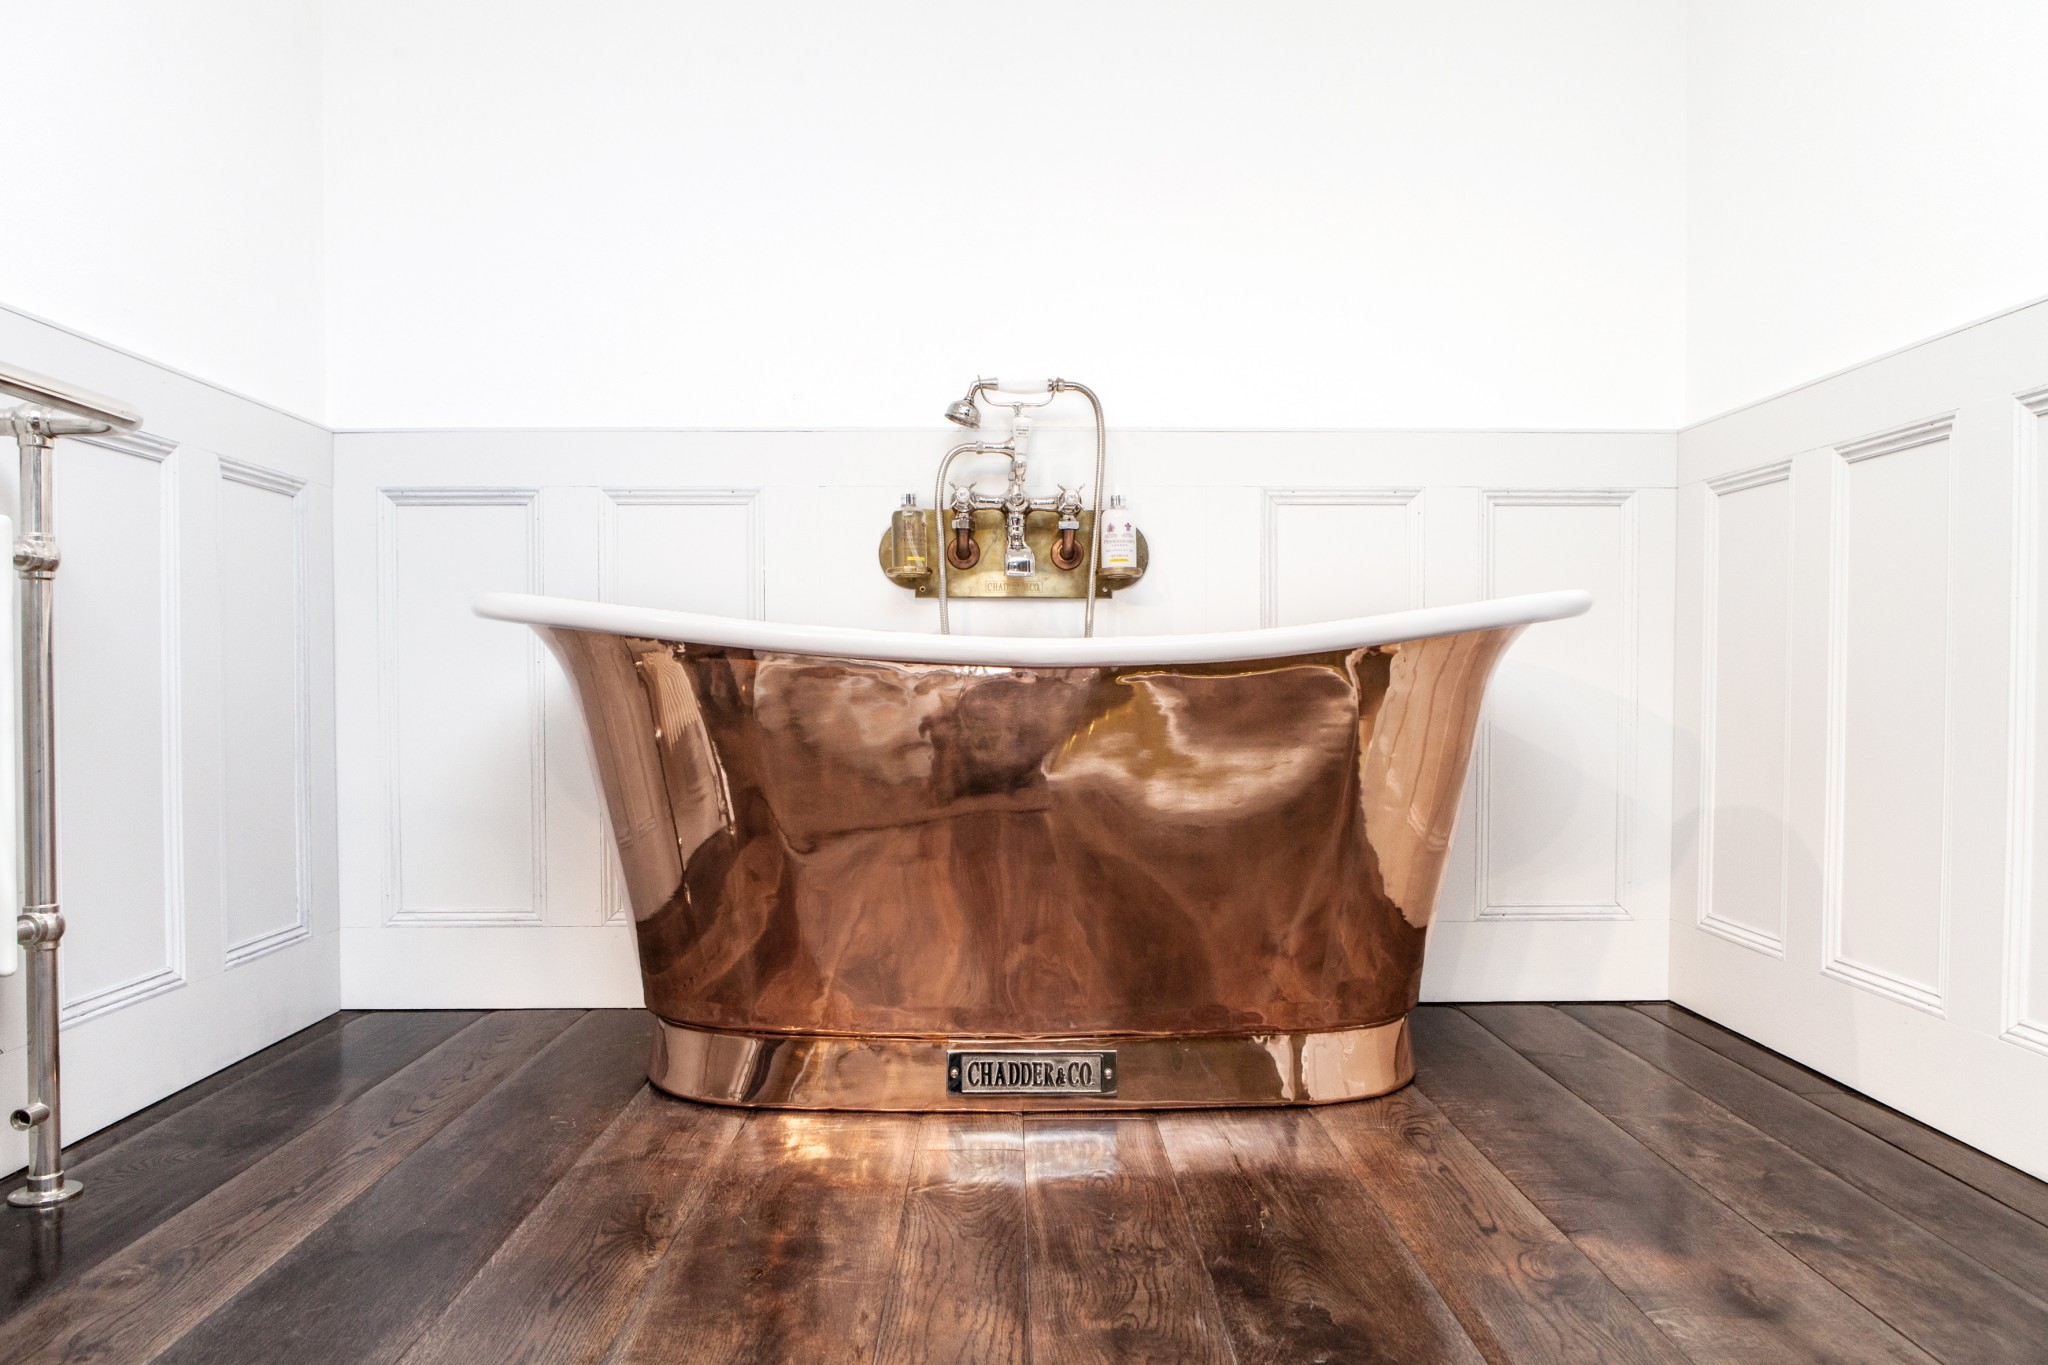 Royal Copper Bath with White enamel interior.